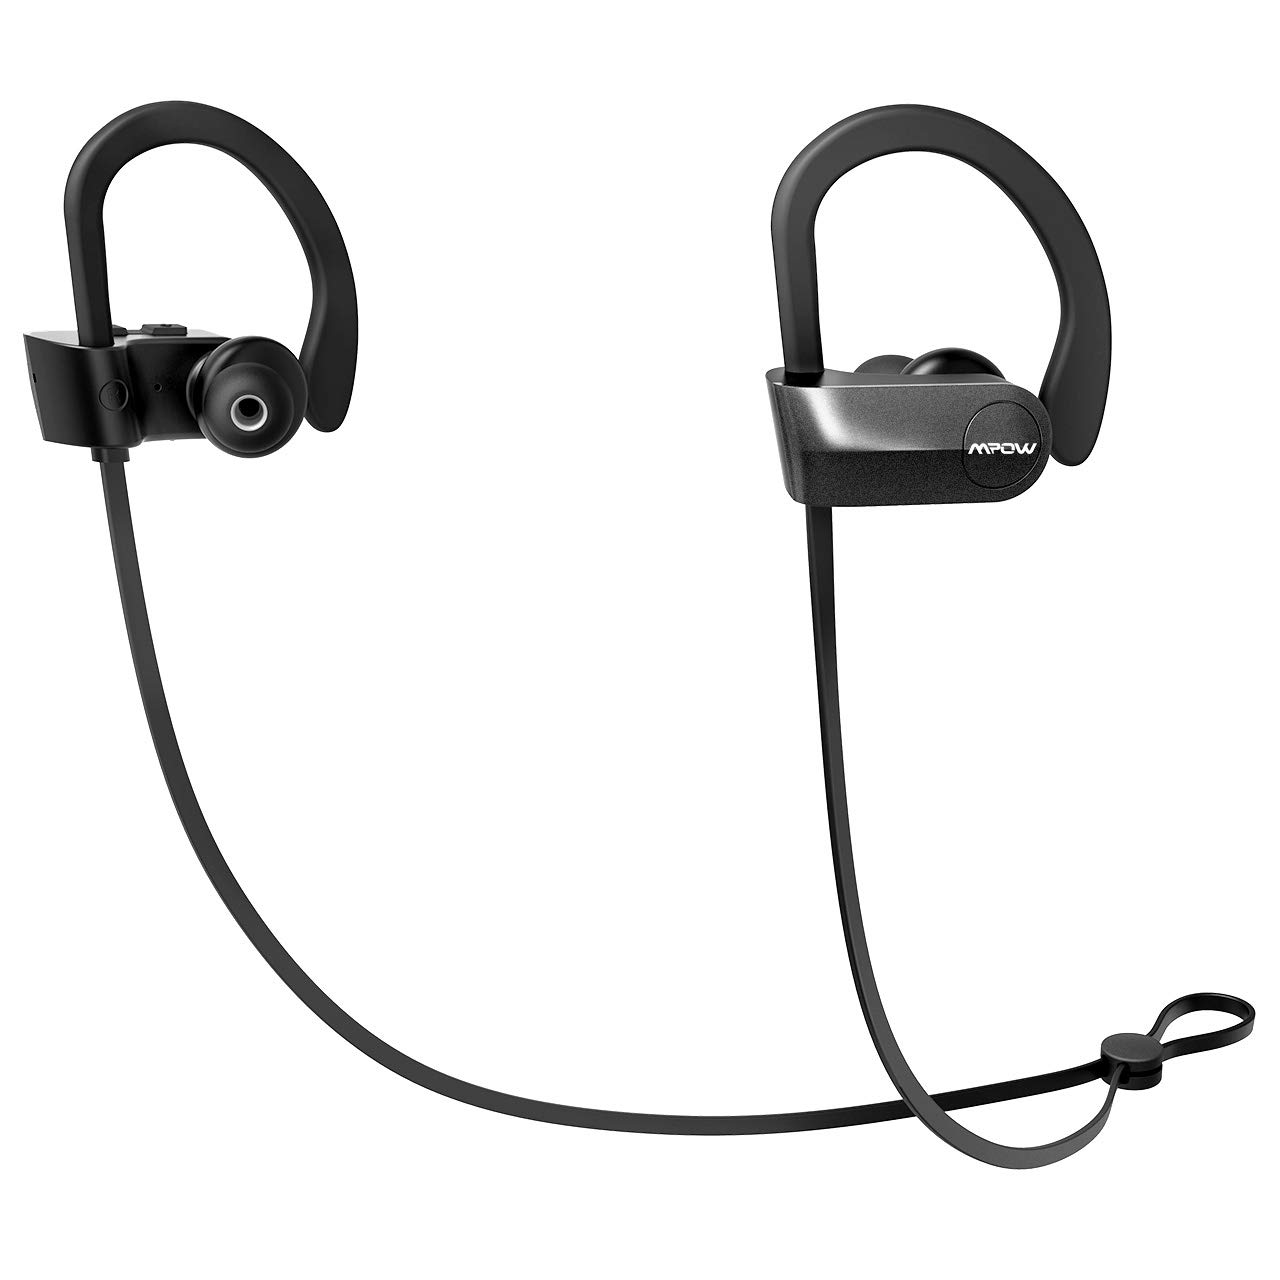 a00c1689be0d15 Mpow D7 [Upgraded] Bluetooth Headphones, IPX7 Waterproof Richer Bass Stereo  Wireless Sports Earbuds w/Mic, 10~12H Battery Noise Cancelling Earphones  for ...